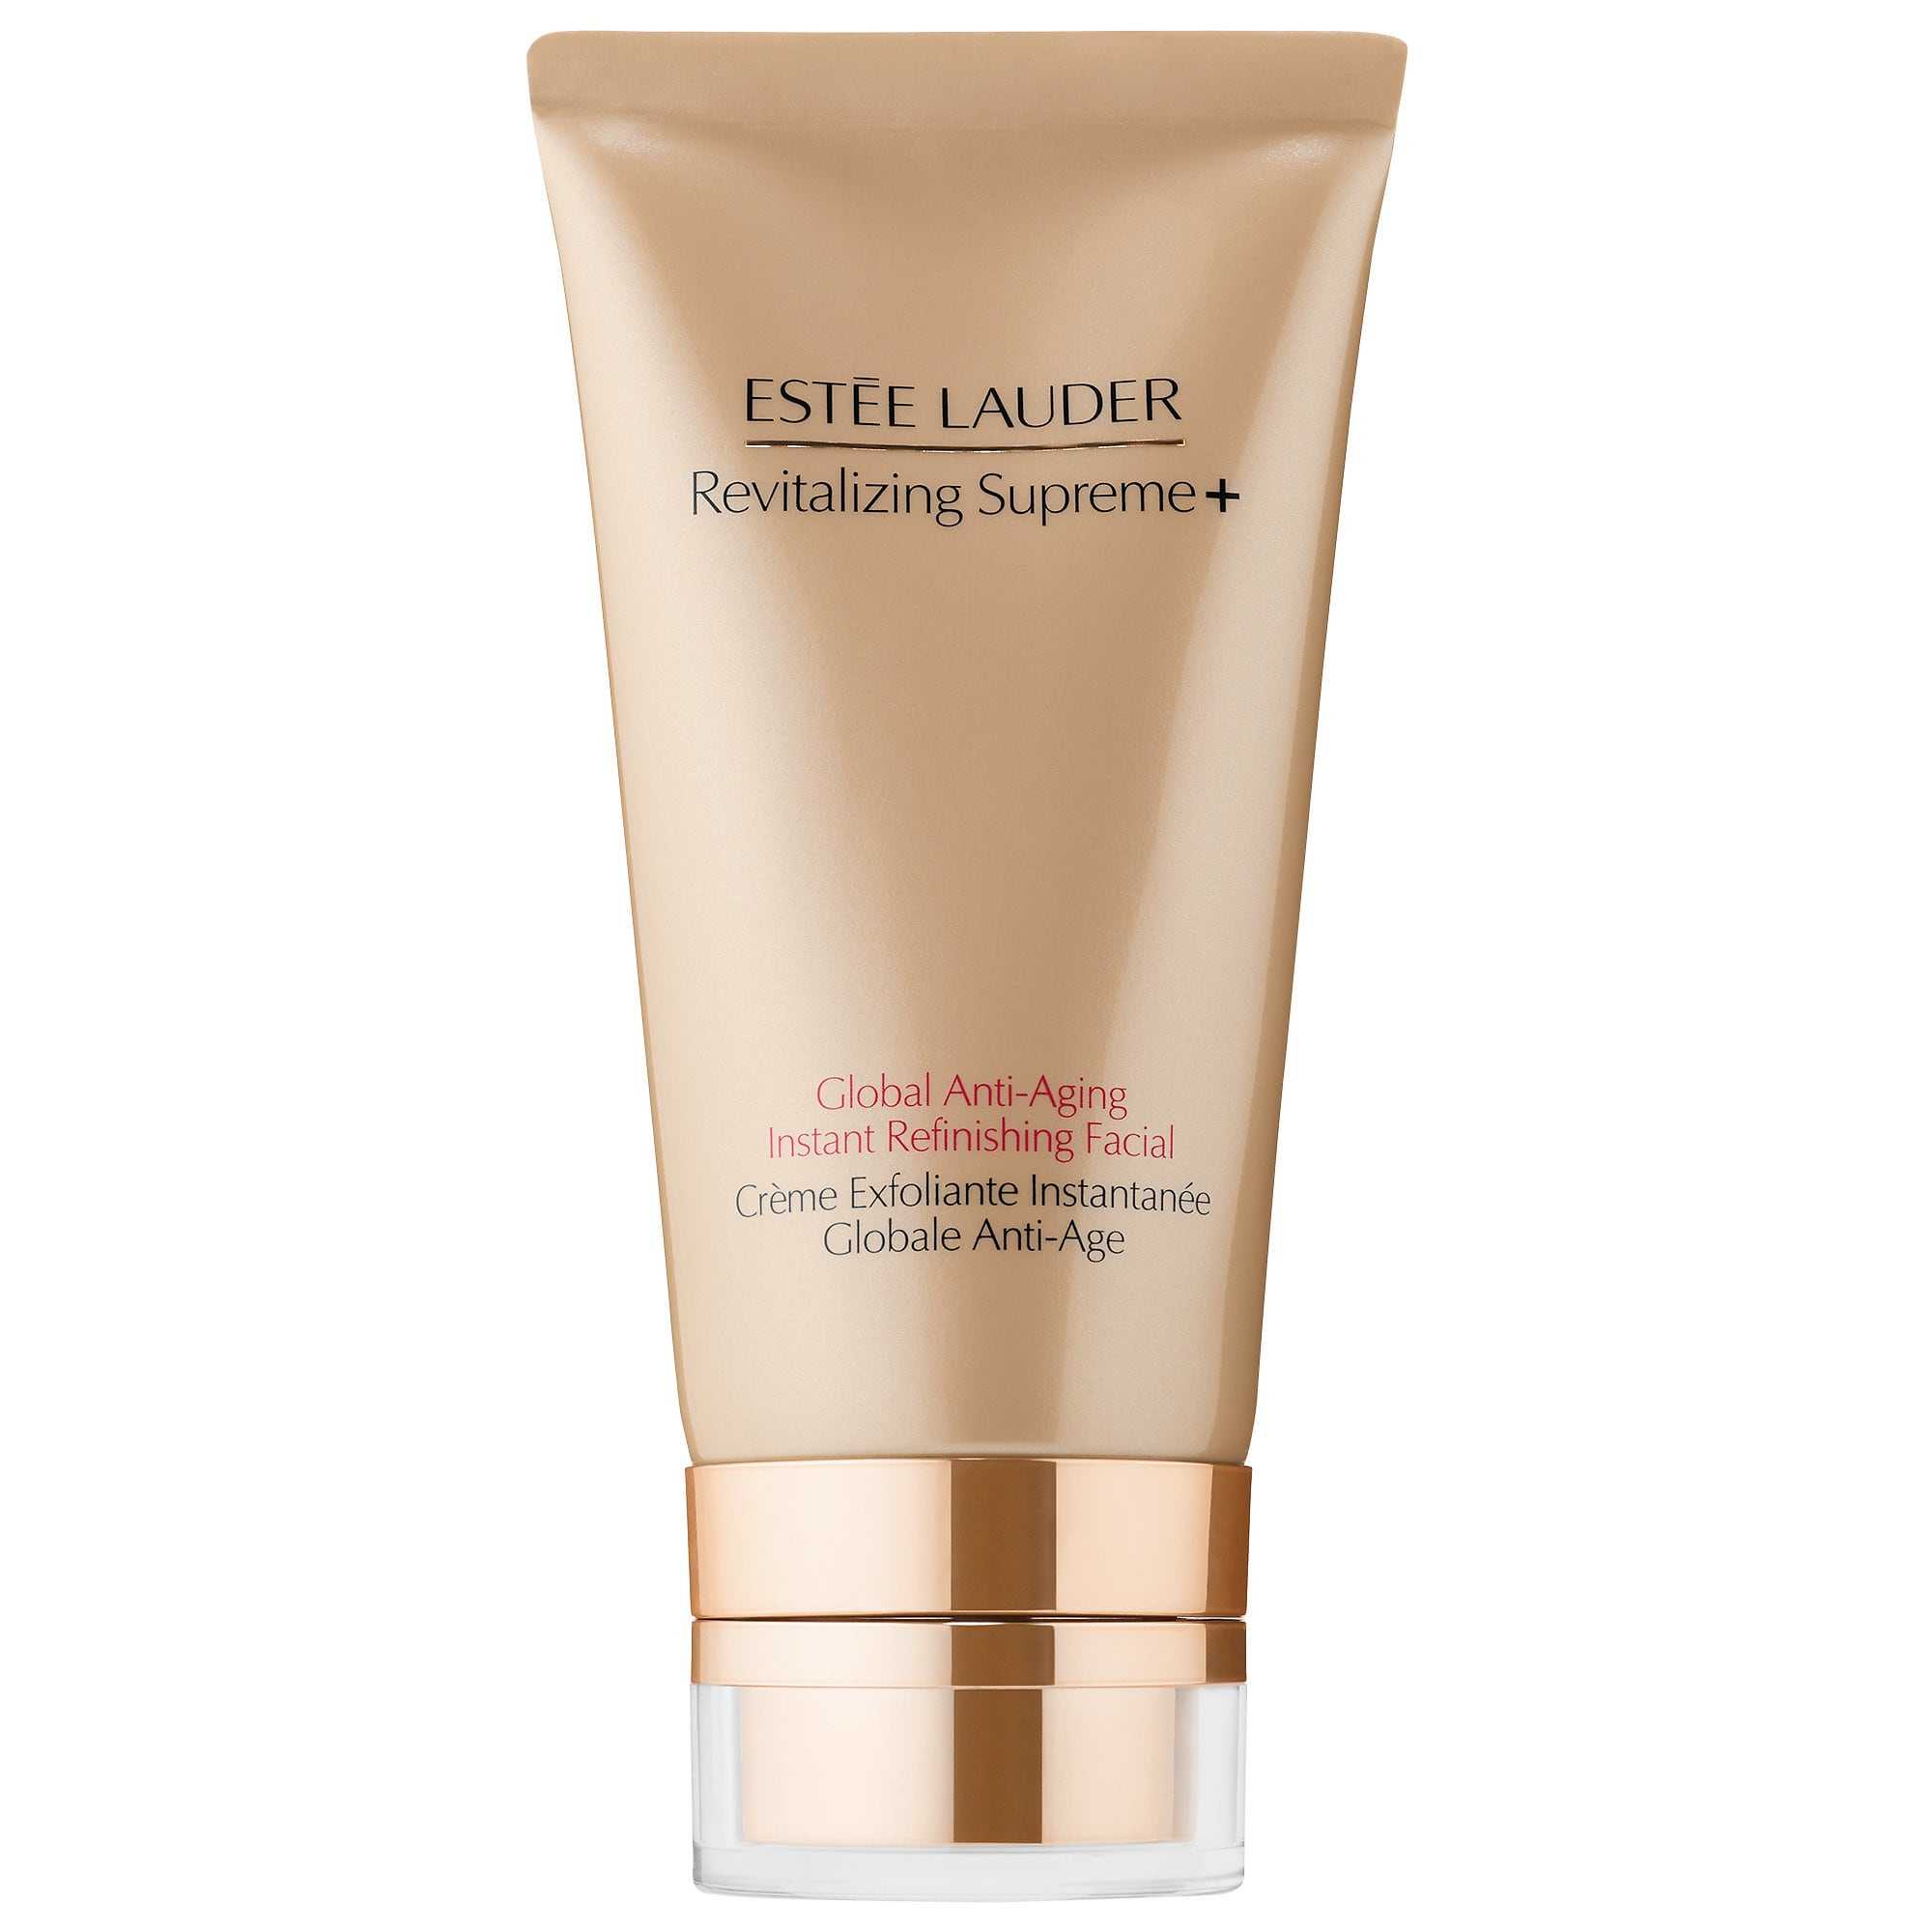 Revitalizing Supreme+ Global Anti- Aging Instant Refinishing Facial